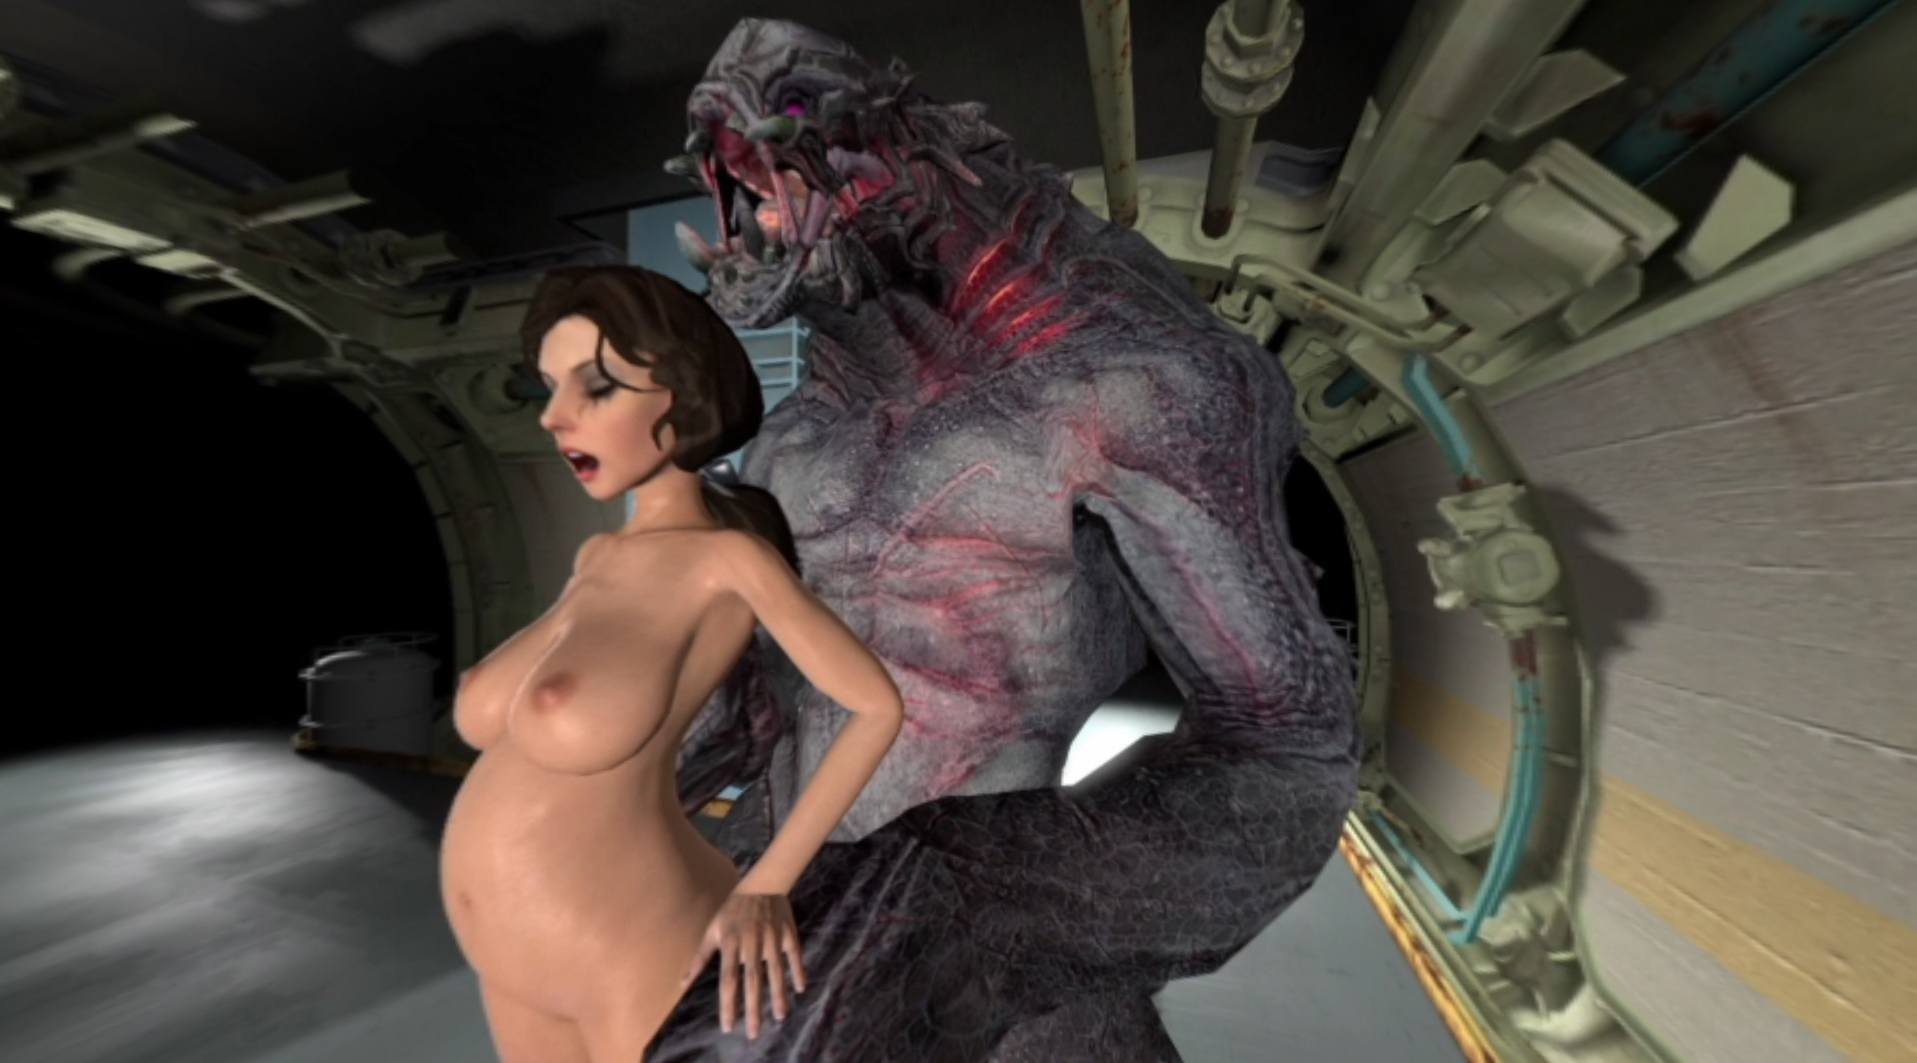 Girl Monster Porn - ... Watch Elizabeth getting fucked by a monster CGI Girl ViceSFM vr porn  video vrporn.com